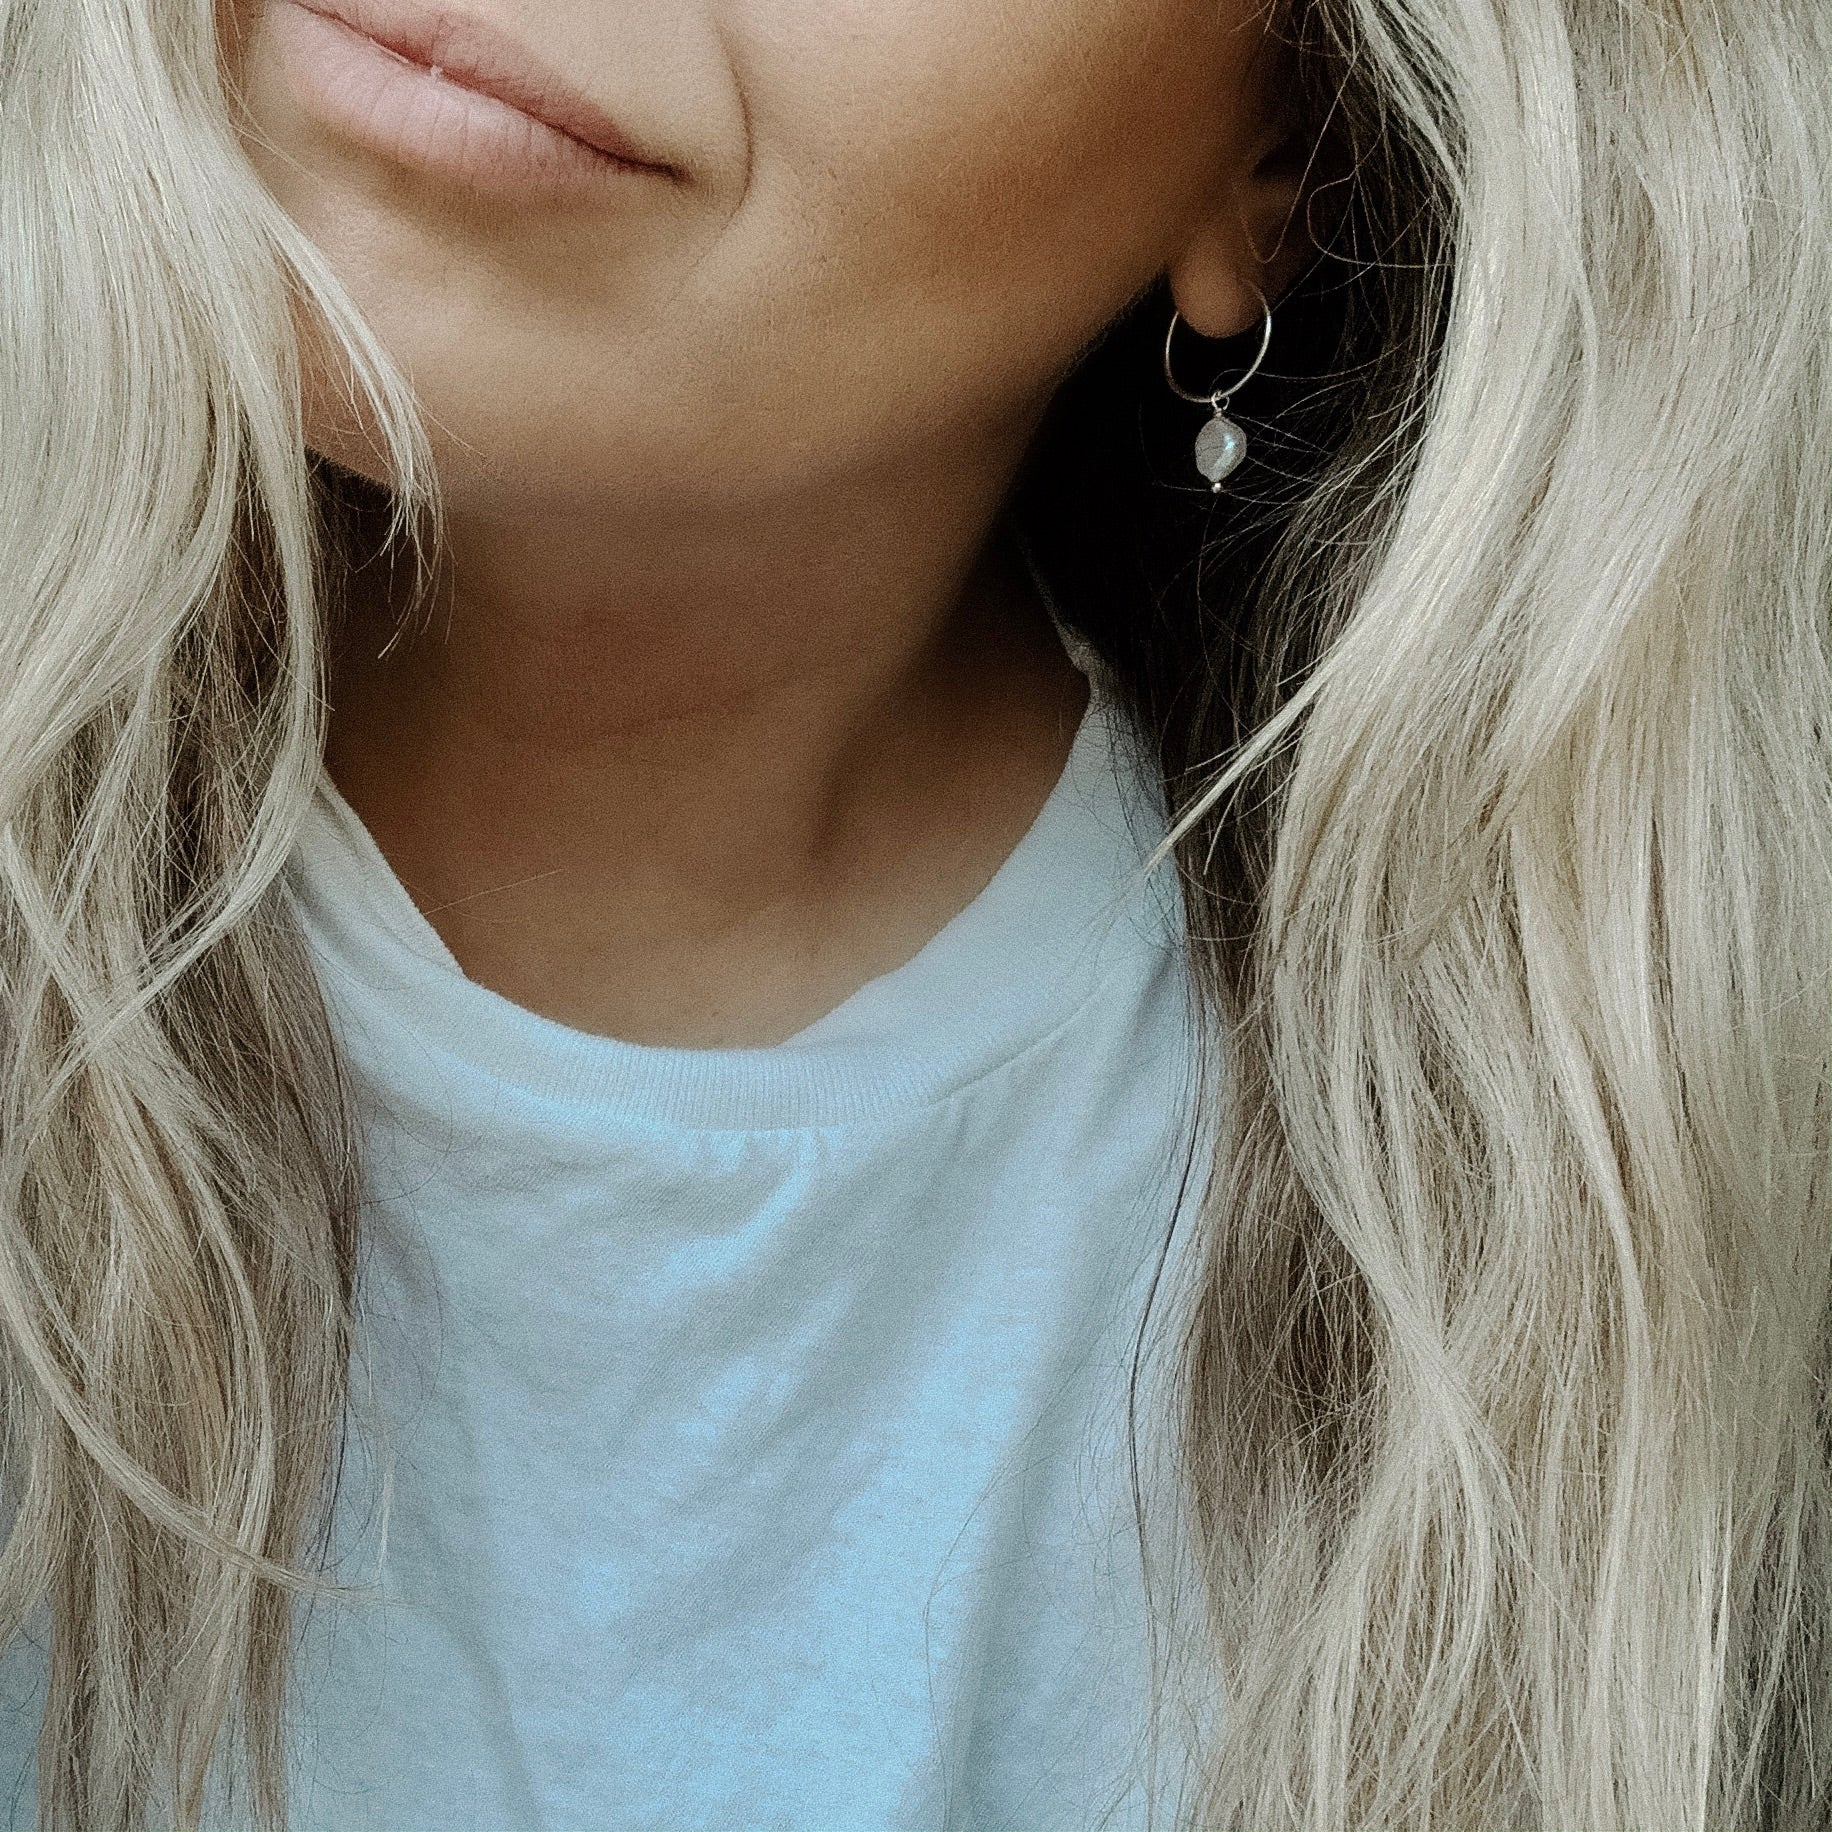 a cropped selfie of a woman wearing a white tee shirt with blonde hair, wearing small silver hoop earrings that have a single pearl